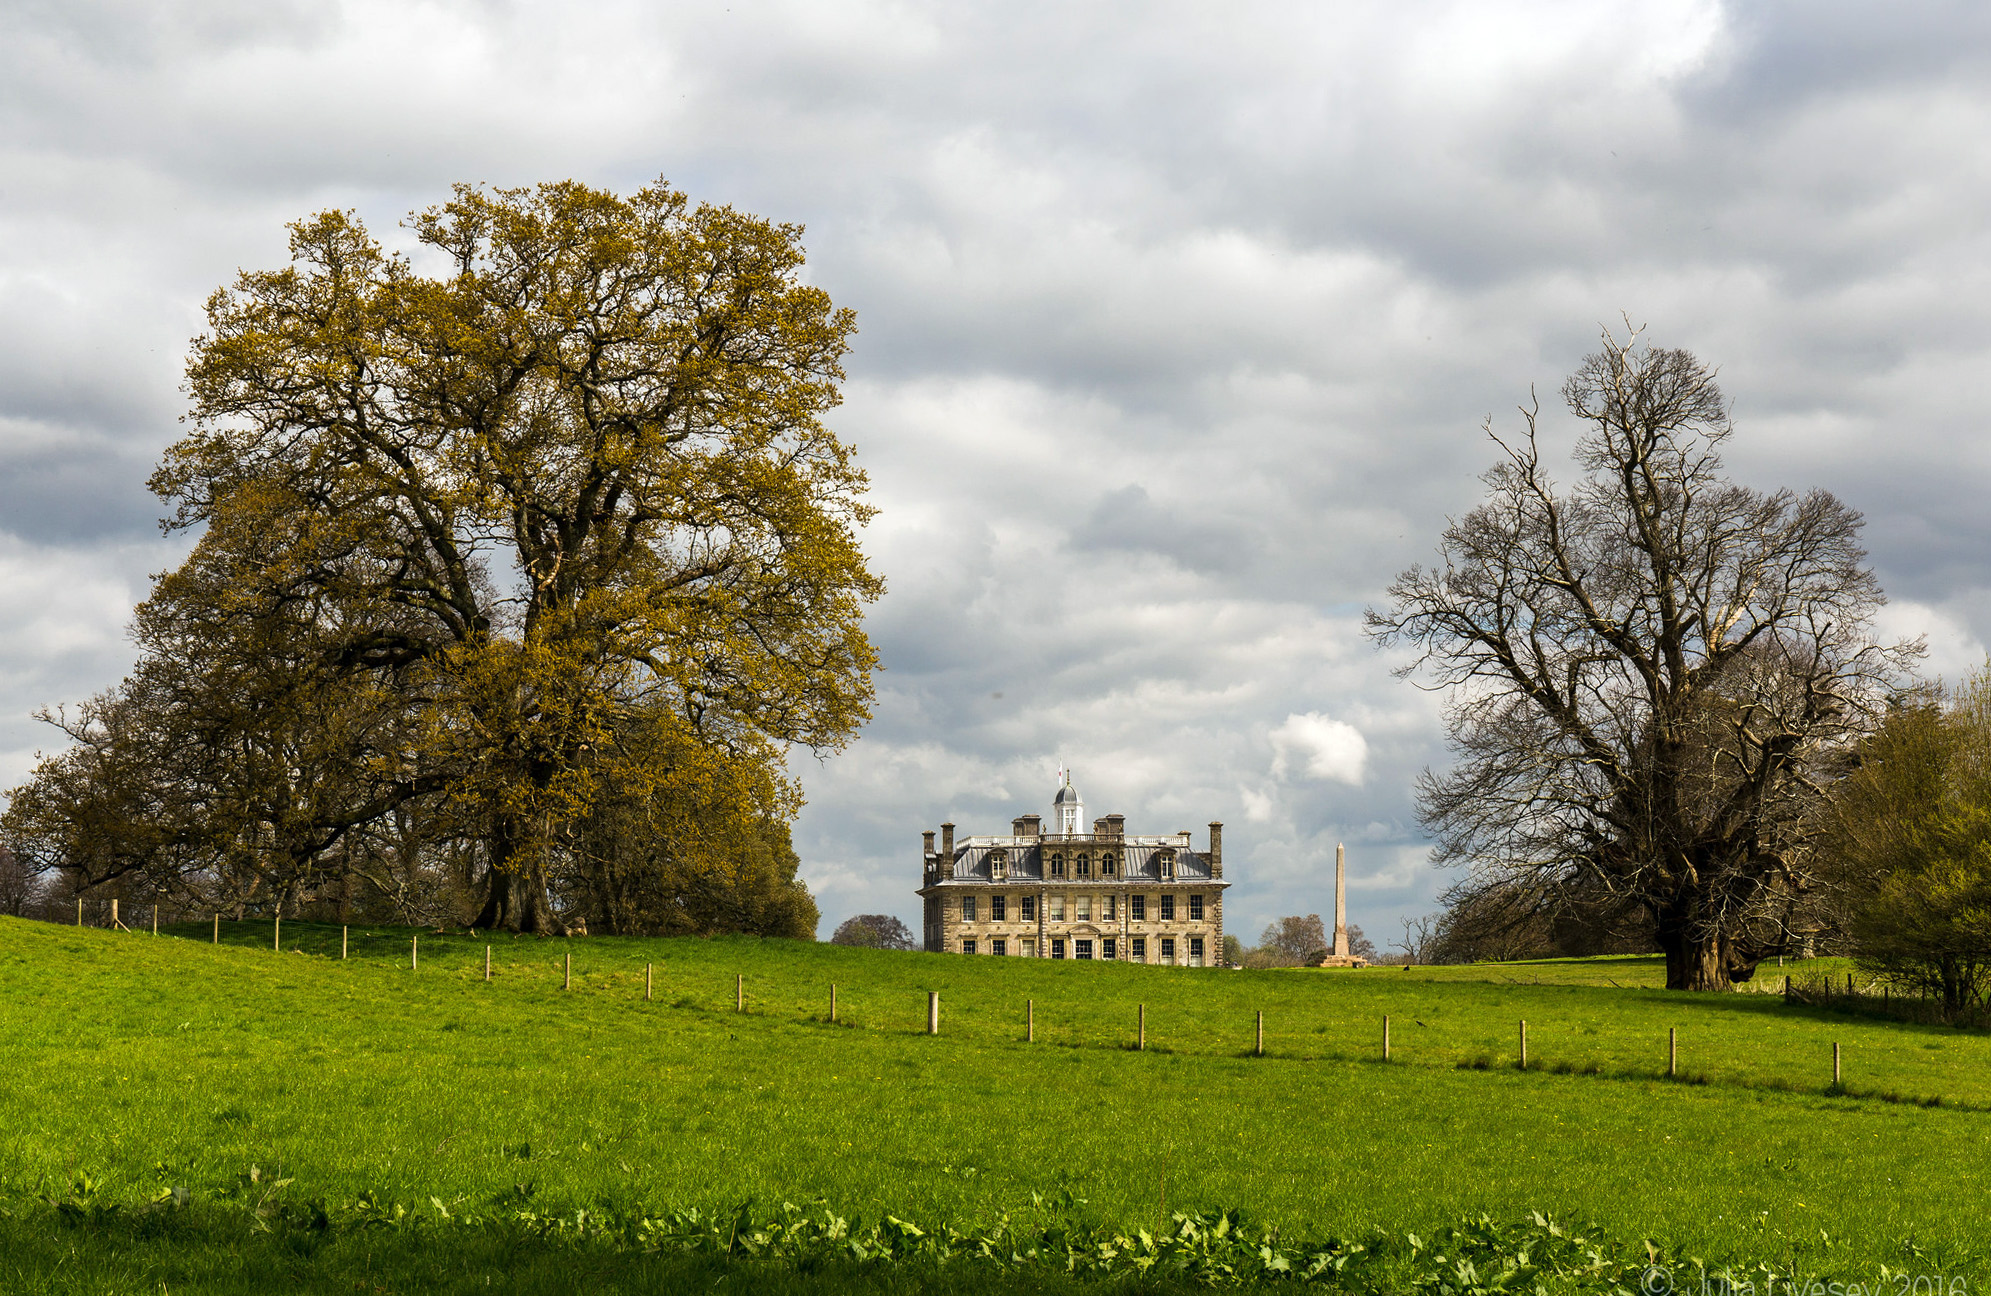 Kingston Lacy Spring